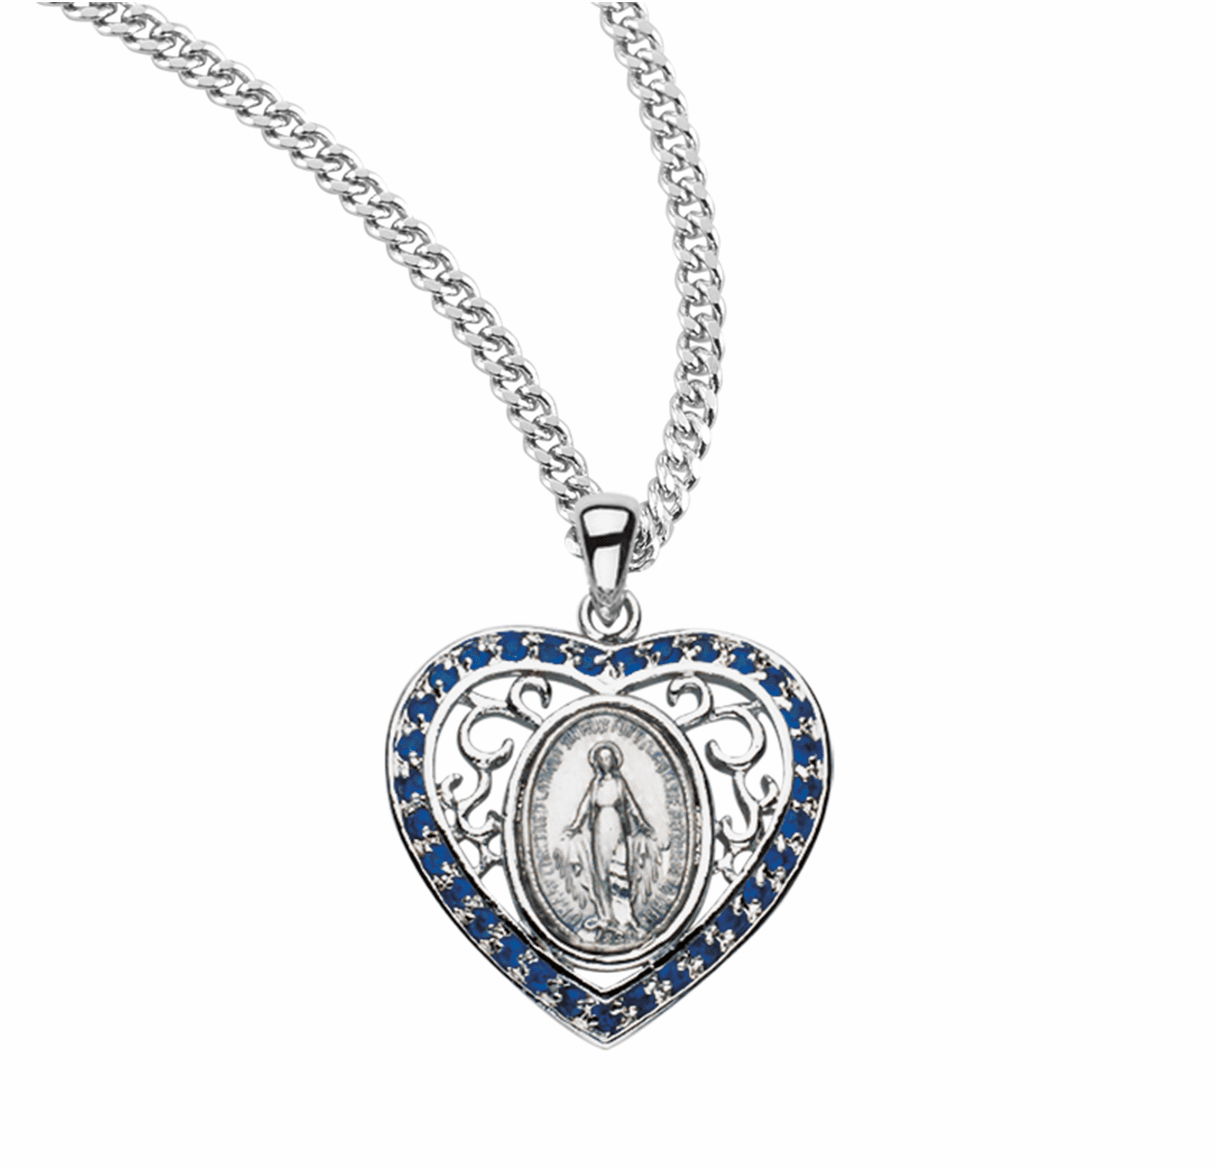 Miraculous Medal with Stones Jewelry